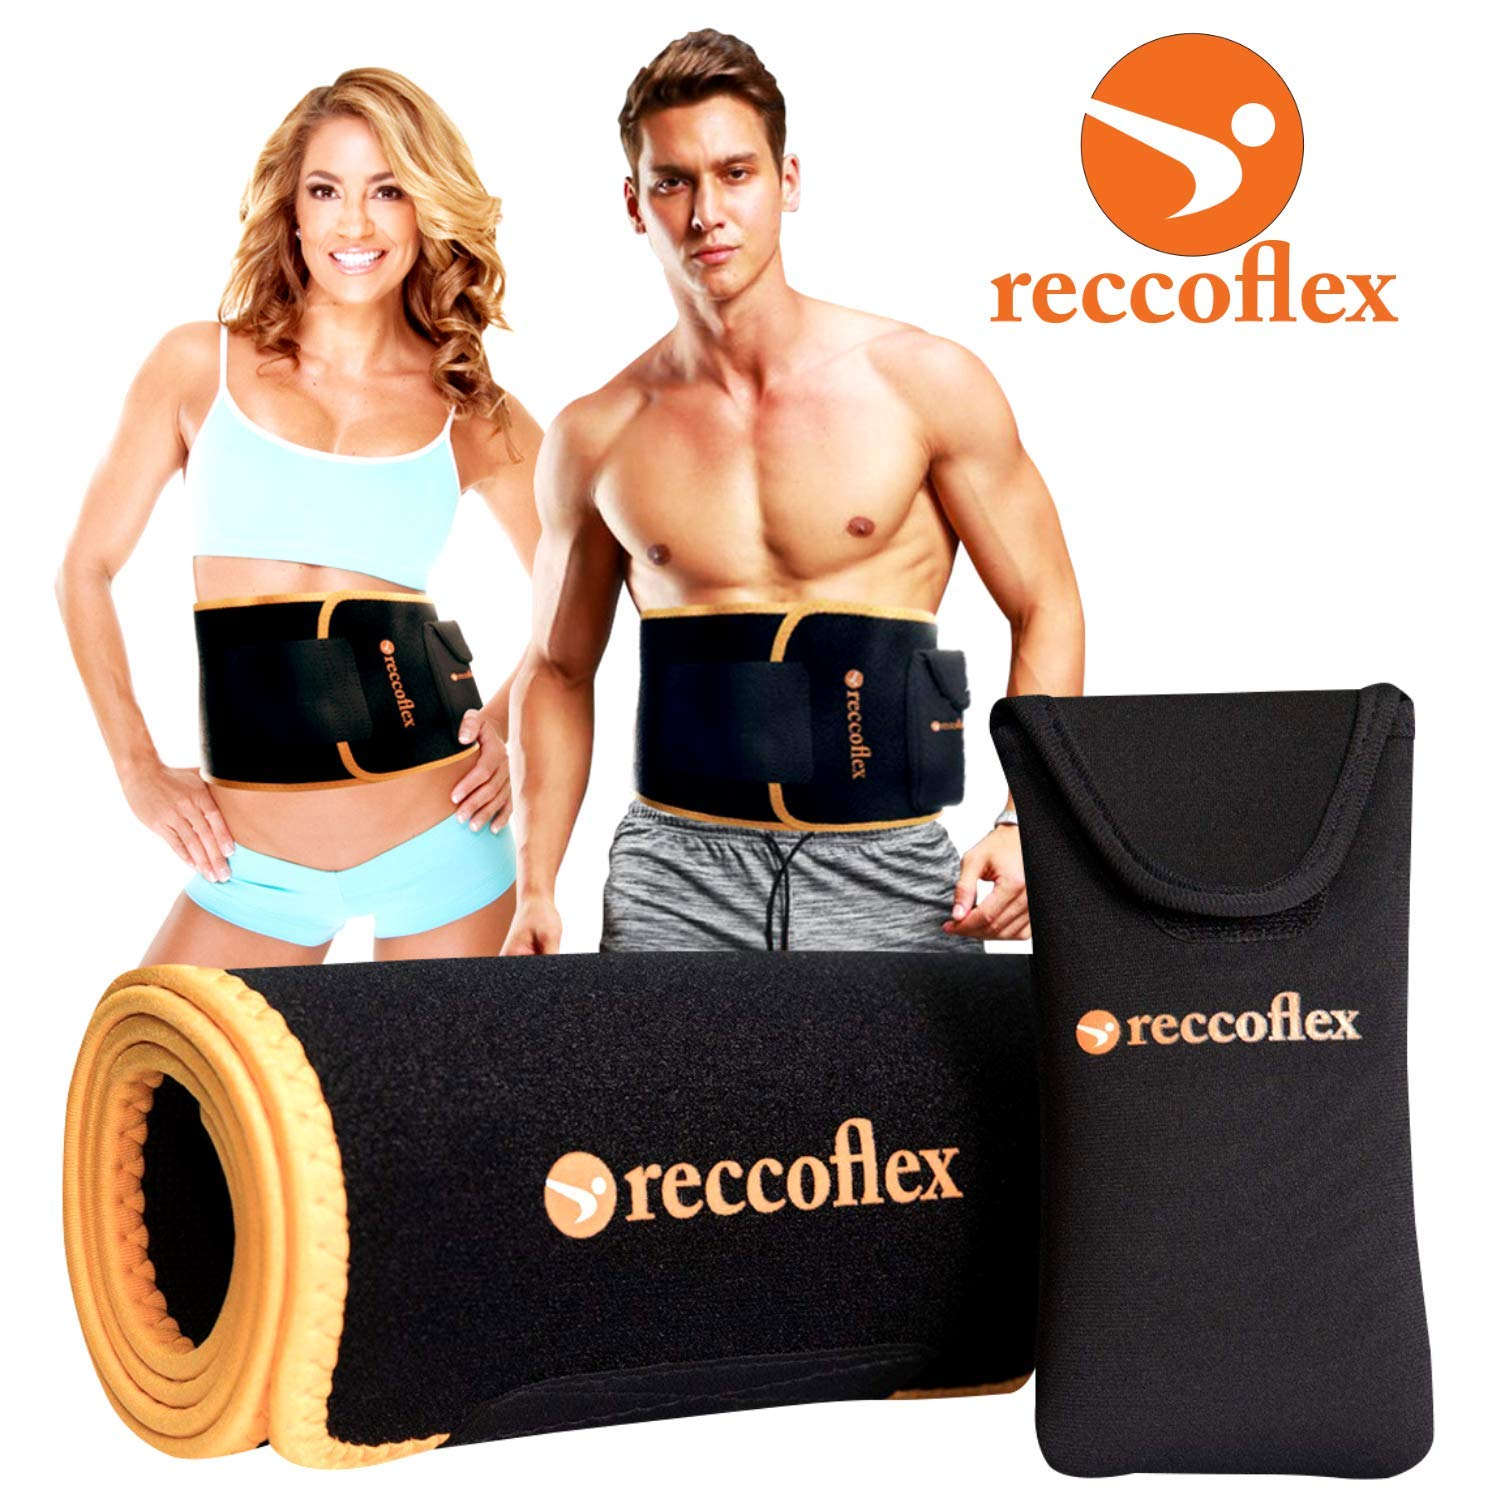 Waist Trainer Sweat Belt and Waist Trimmer for Women and Men Stomach Wraps for Sauna Belt Effect Mens Waist Trimmer Belt and Waist Bands for Intense and Effective Workouts